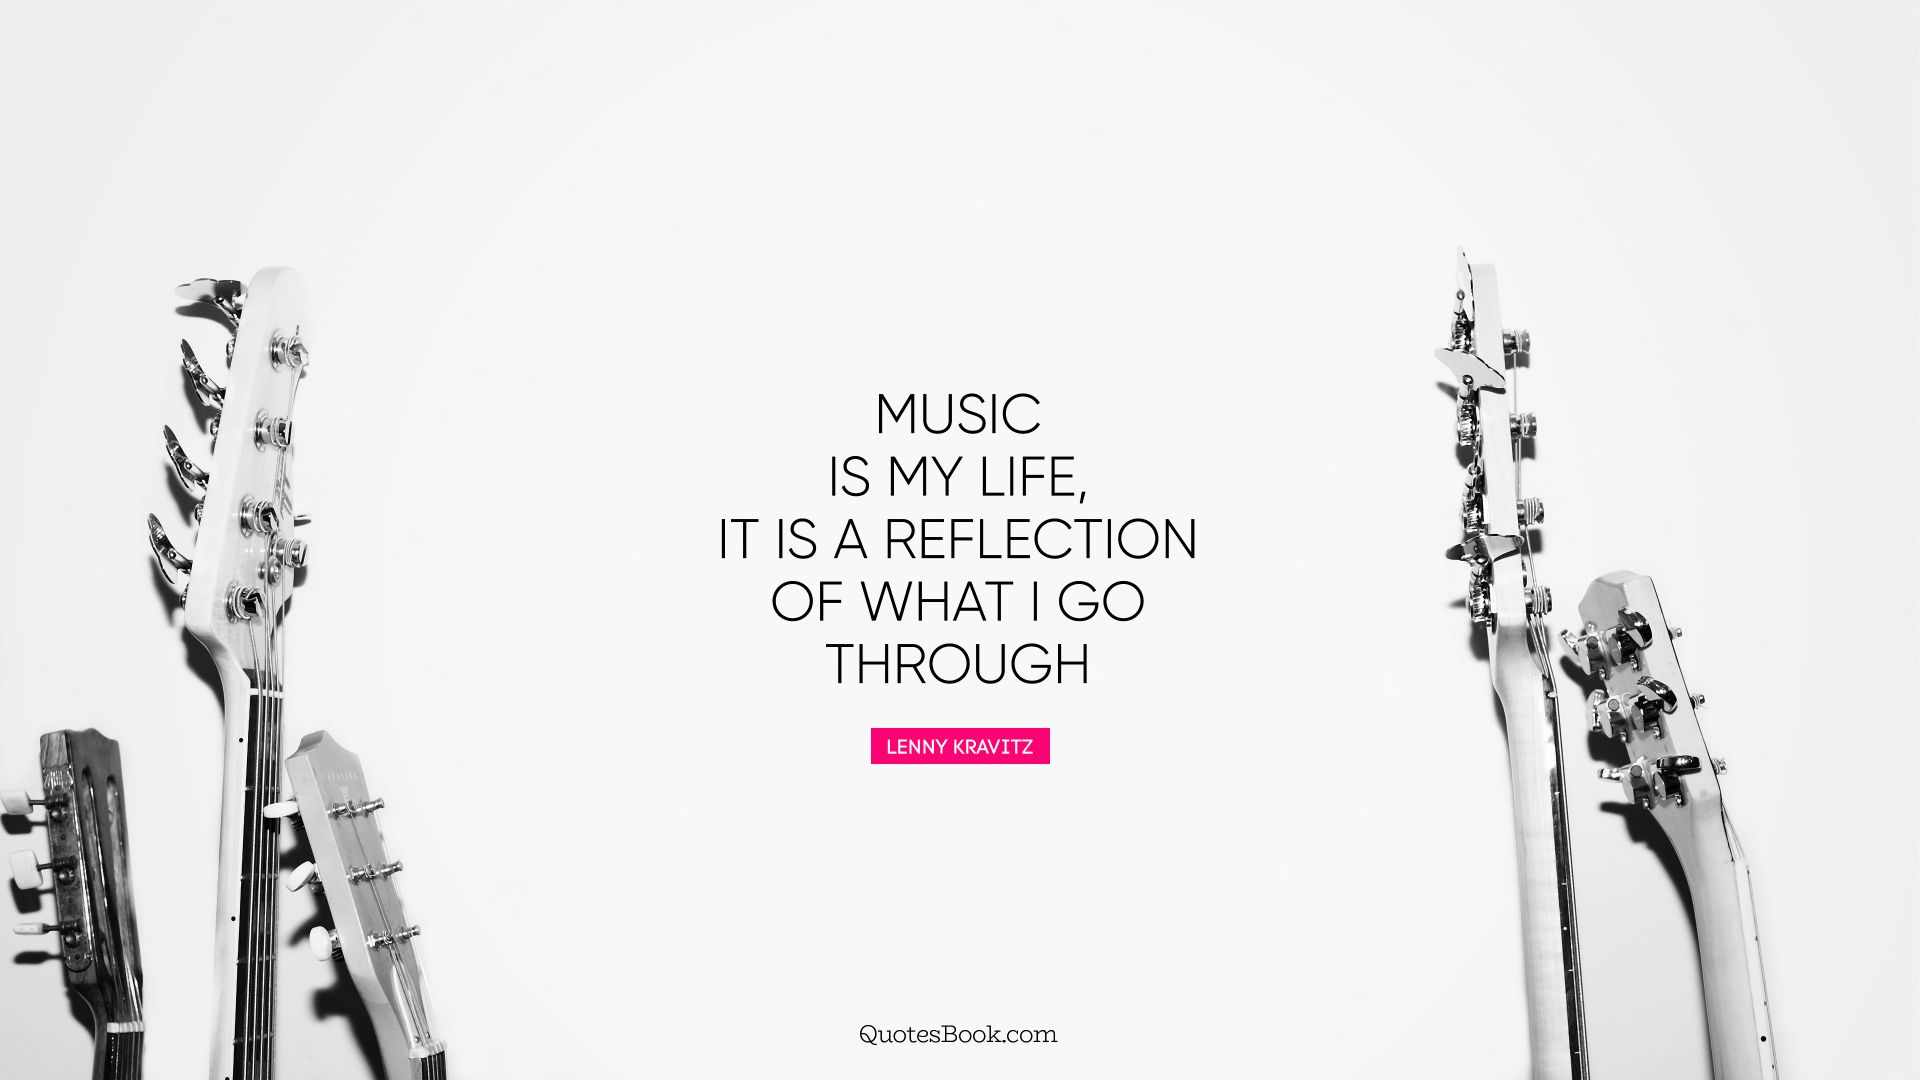 Music is my life, it is a reflection of what I go through ...